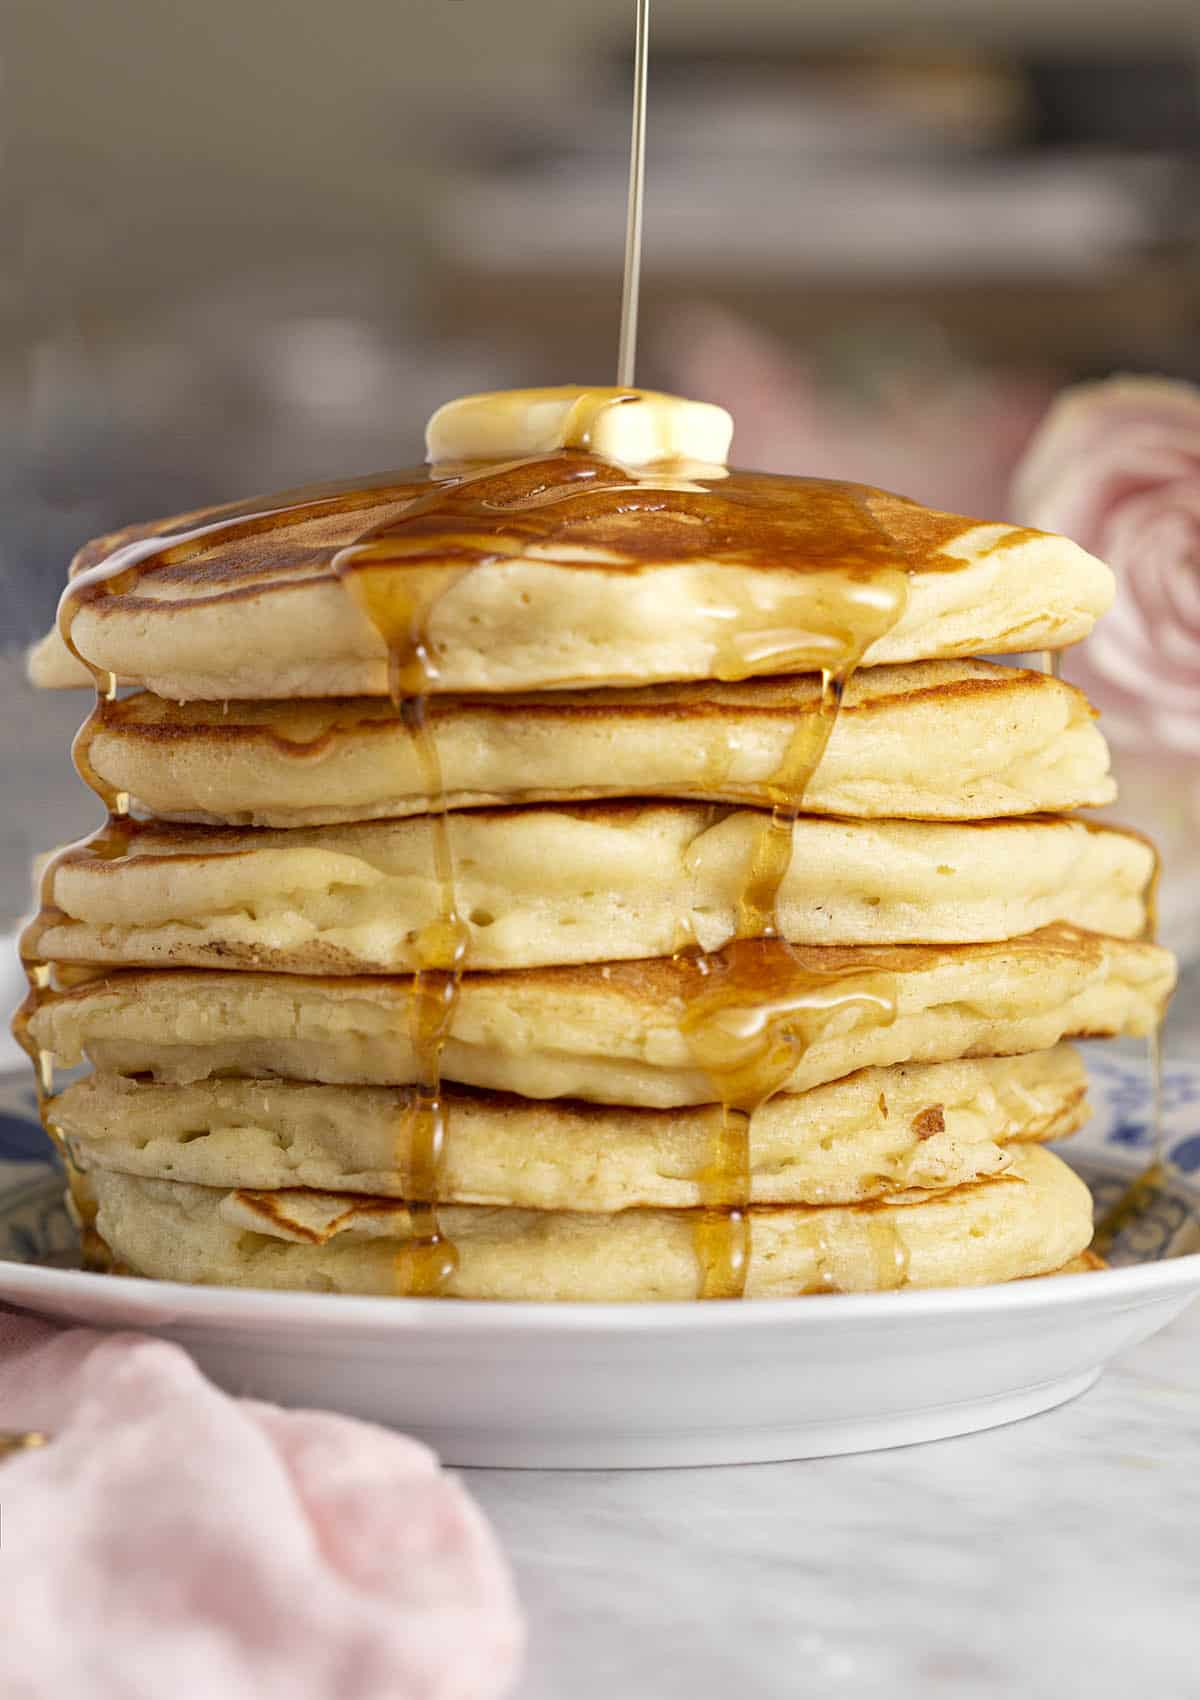 A huge stack of pancakes getting drenched with maple syrup.